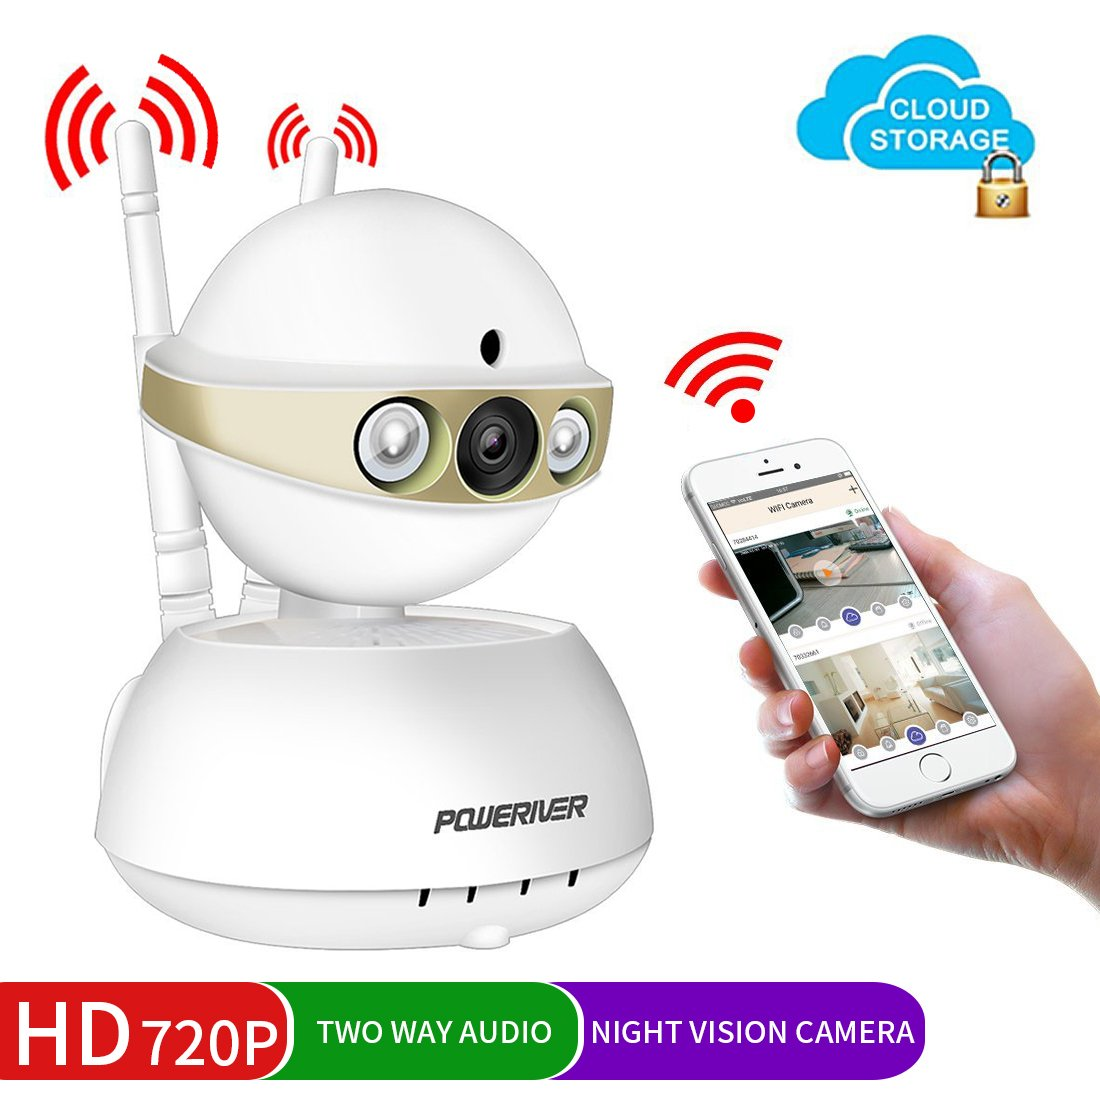 Home Camera,POWERIVER WiFi IP Indoor Security System with Motion Detection,Two-Way Audio & Night Vision for Baby/Pet / Front Porch Monitor,Remote Control with iOS,Android,PC App(Gold)